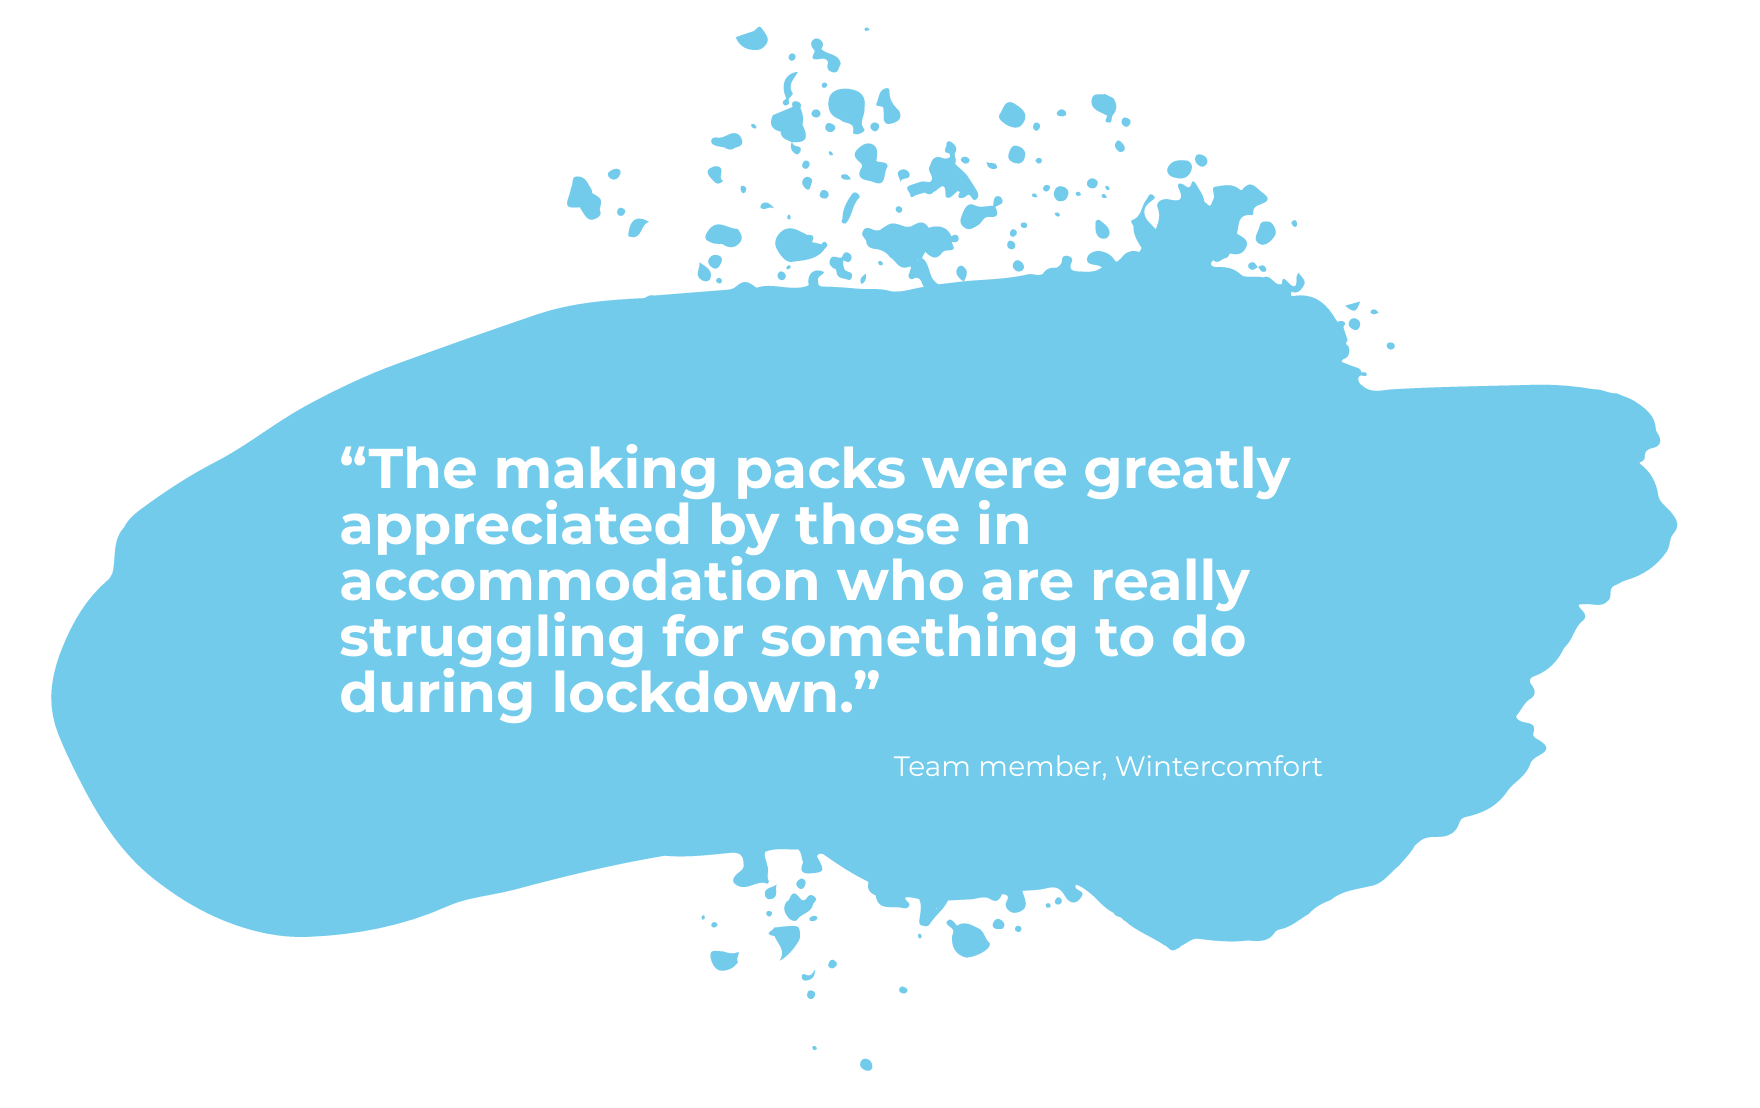 """Blue paint swipe with a quote from a team member at Wintercomfort saying """"The making packs were greatly appreciated by those in accommodation who are really struggling for something to do during lockdown."""""""